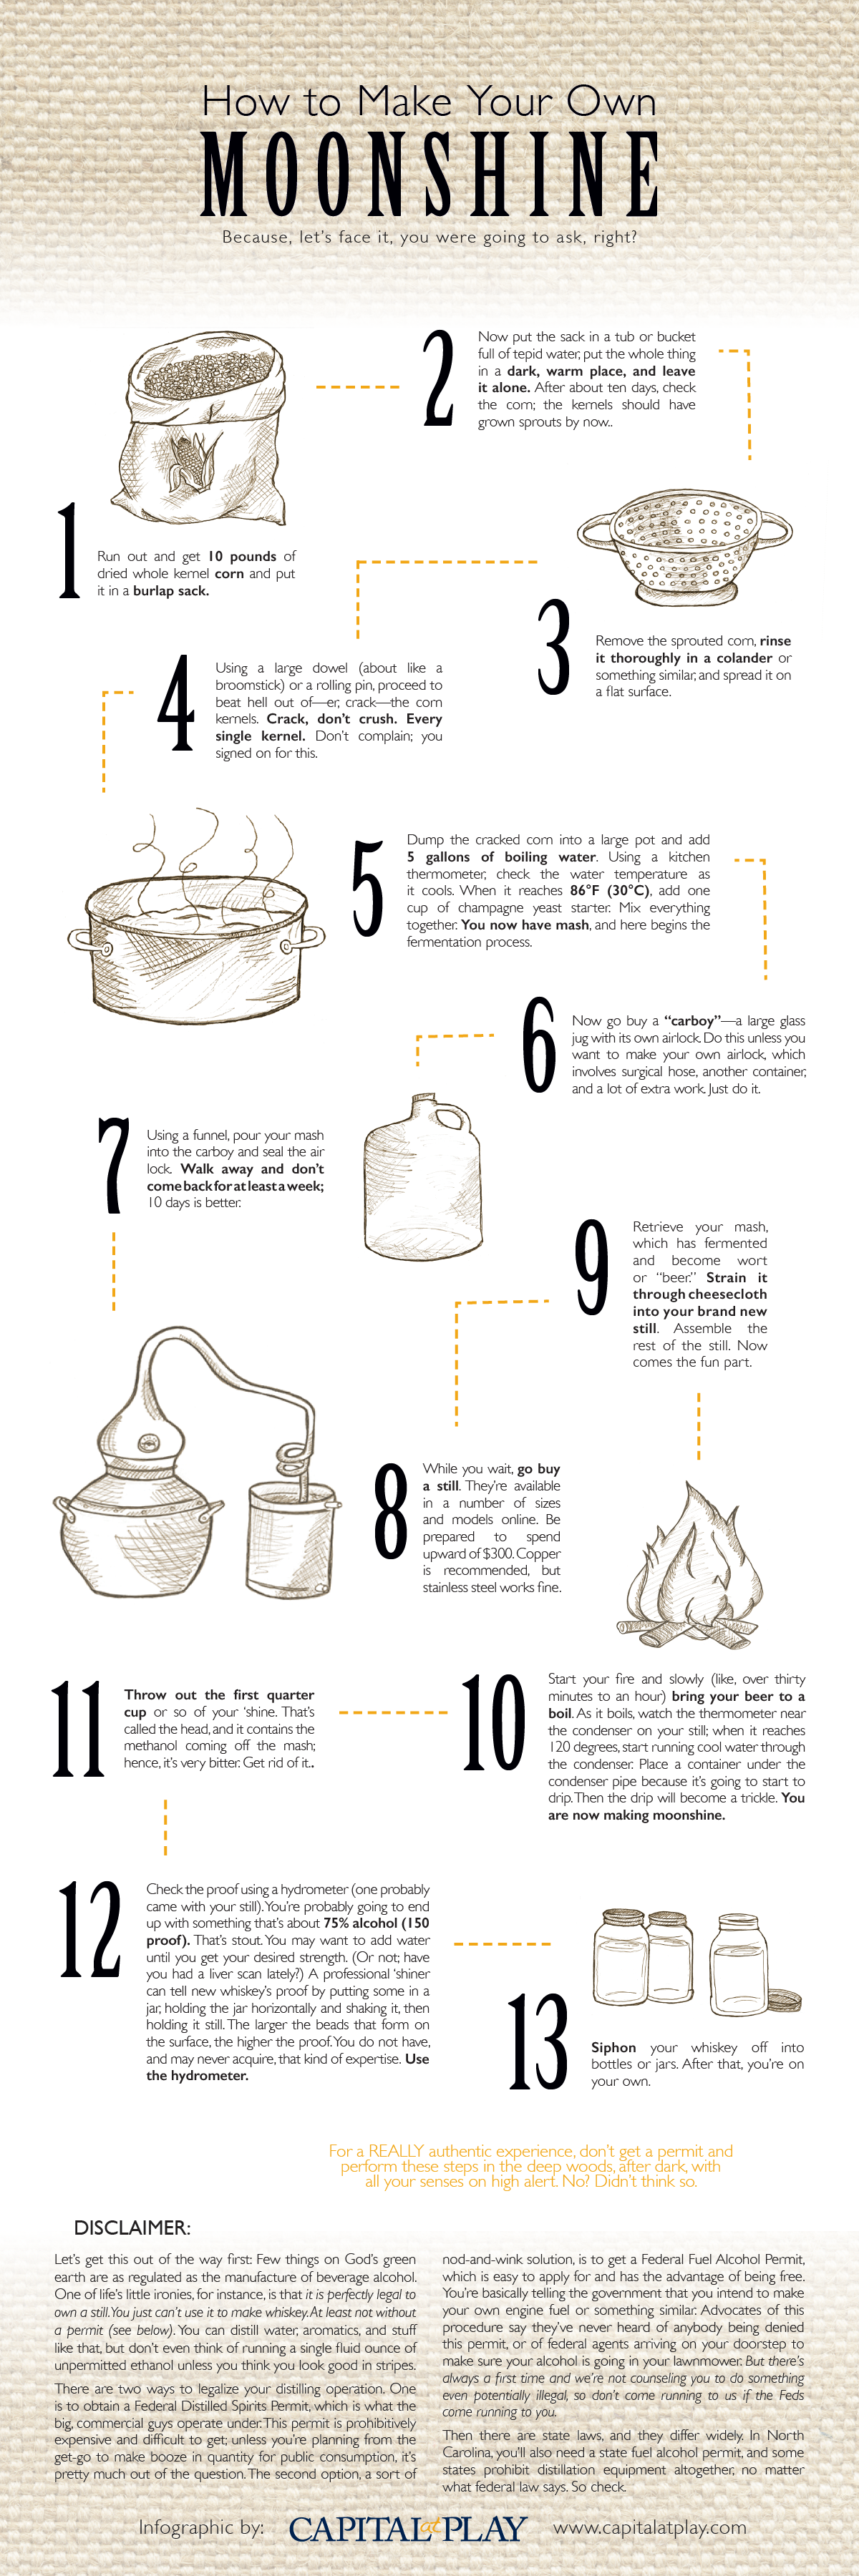 How to Make Moonshine How to Make Moonshine new images